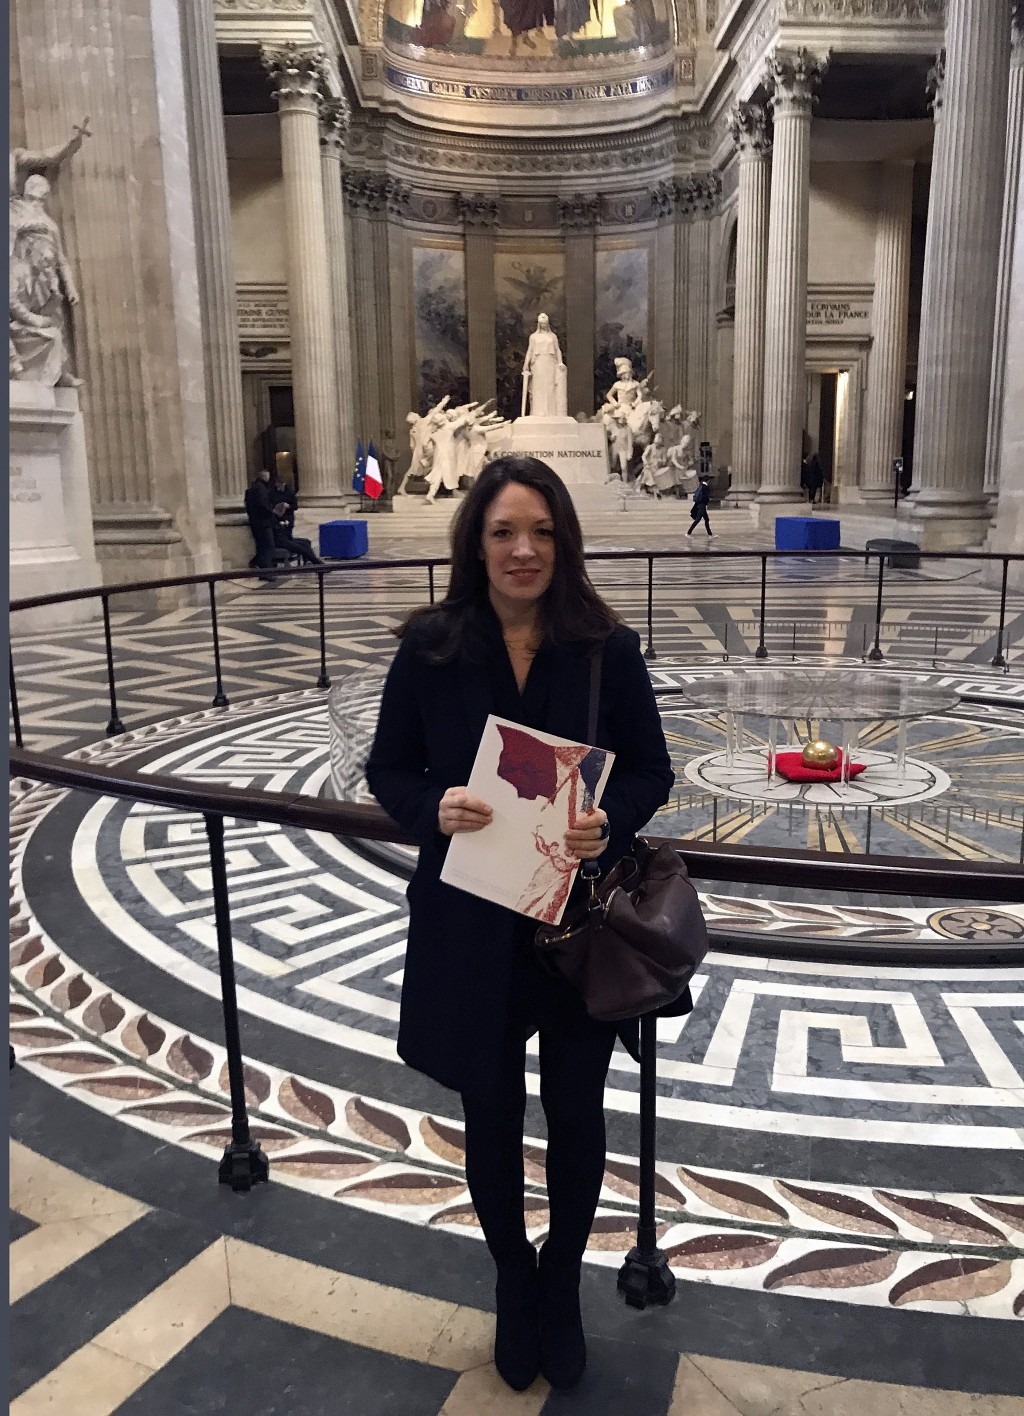 Britain's Catherine Norris Trent holds her document after a naturalization ceremony in Paris' Pantheon monument, Thursday, March 21, 2019. With the lo...